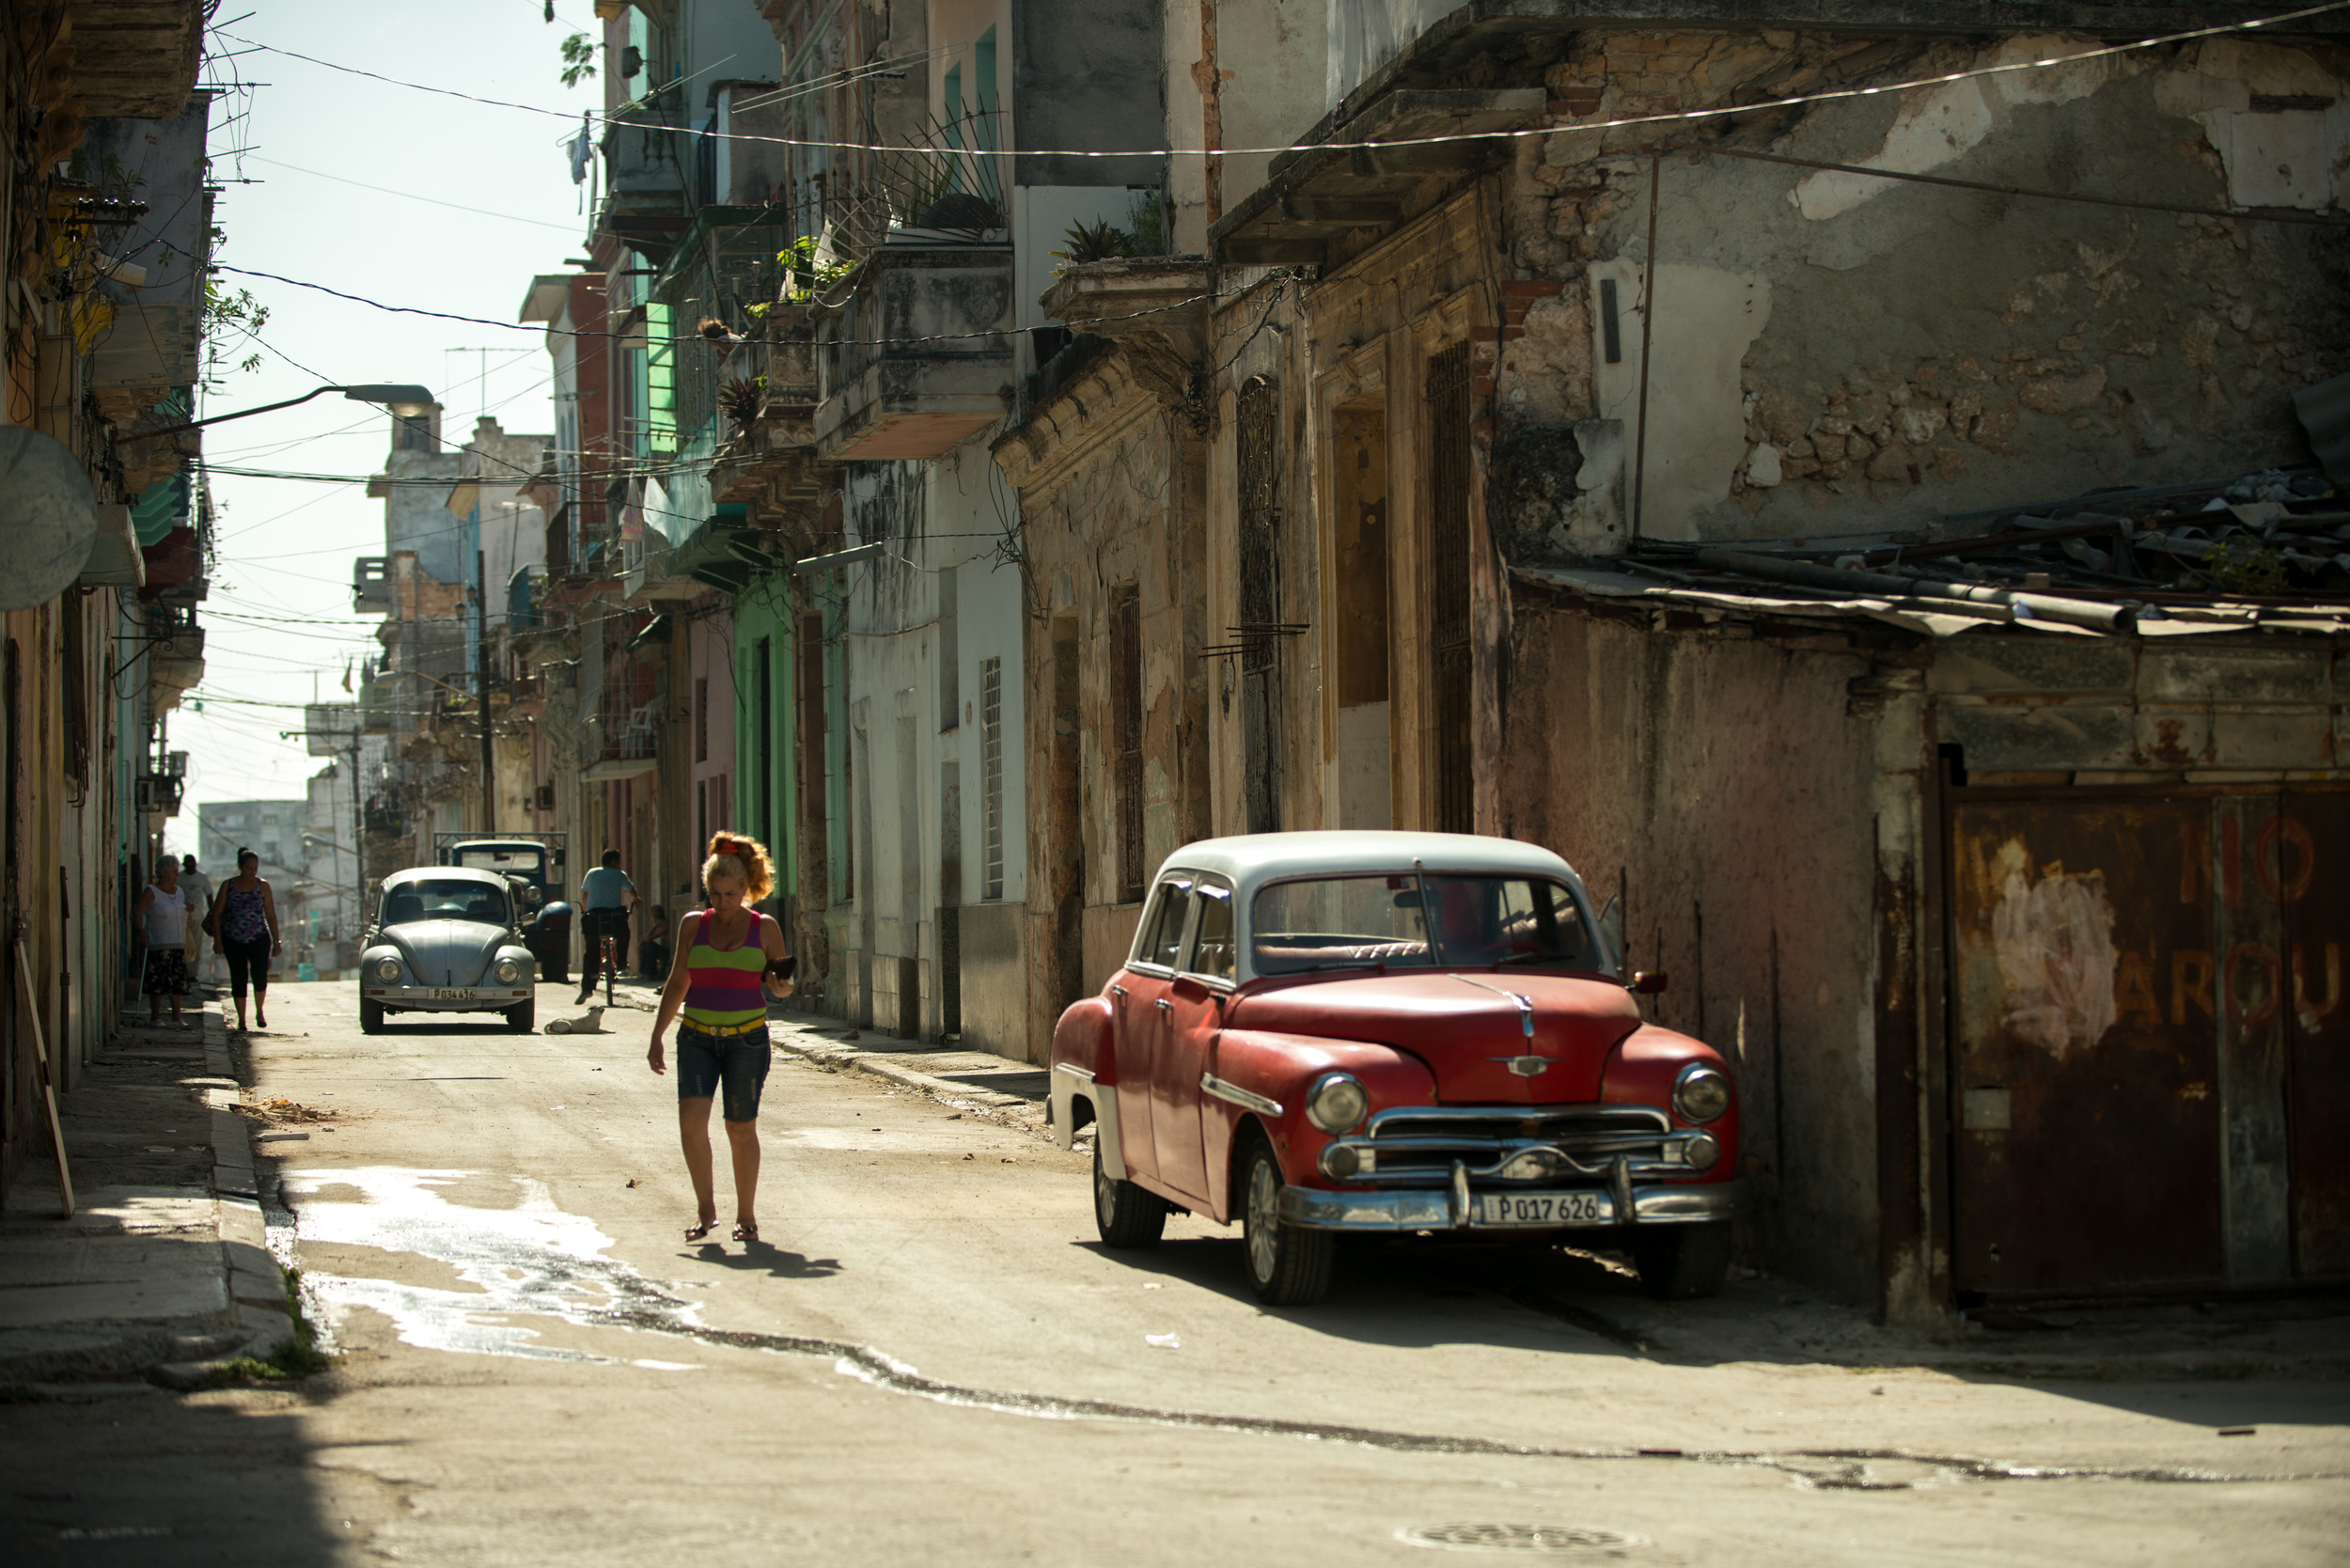 Old american cars are really all over the city of Havana. While the ones in the nicest condition give tourists tours, many others are still used as daily transportation.